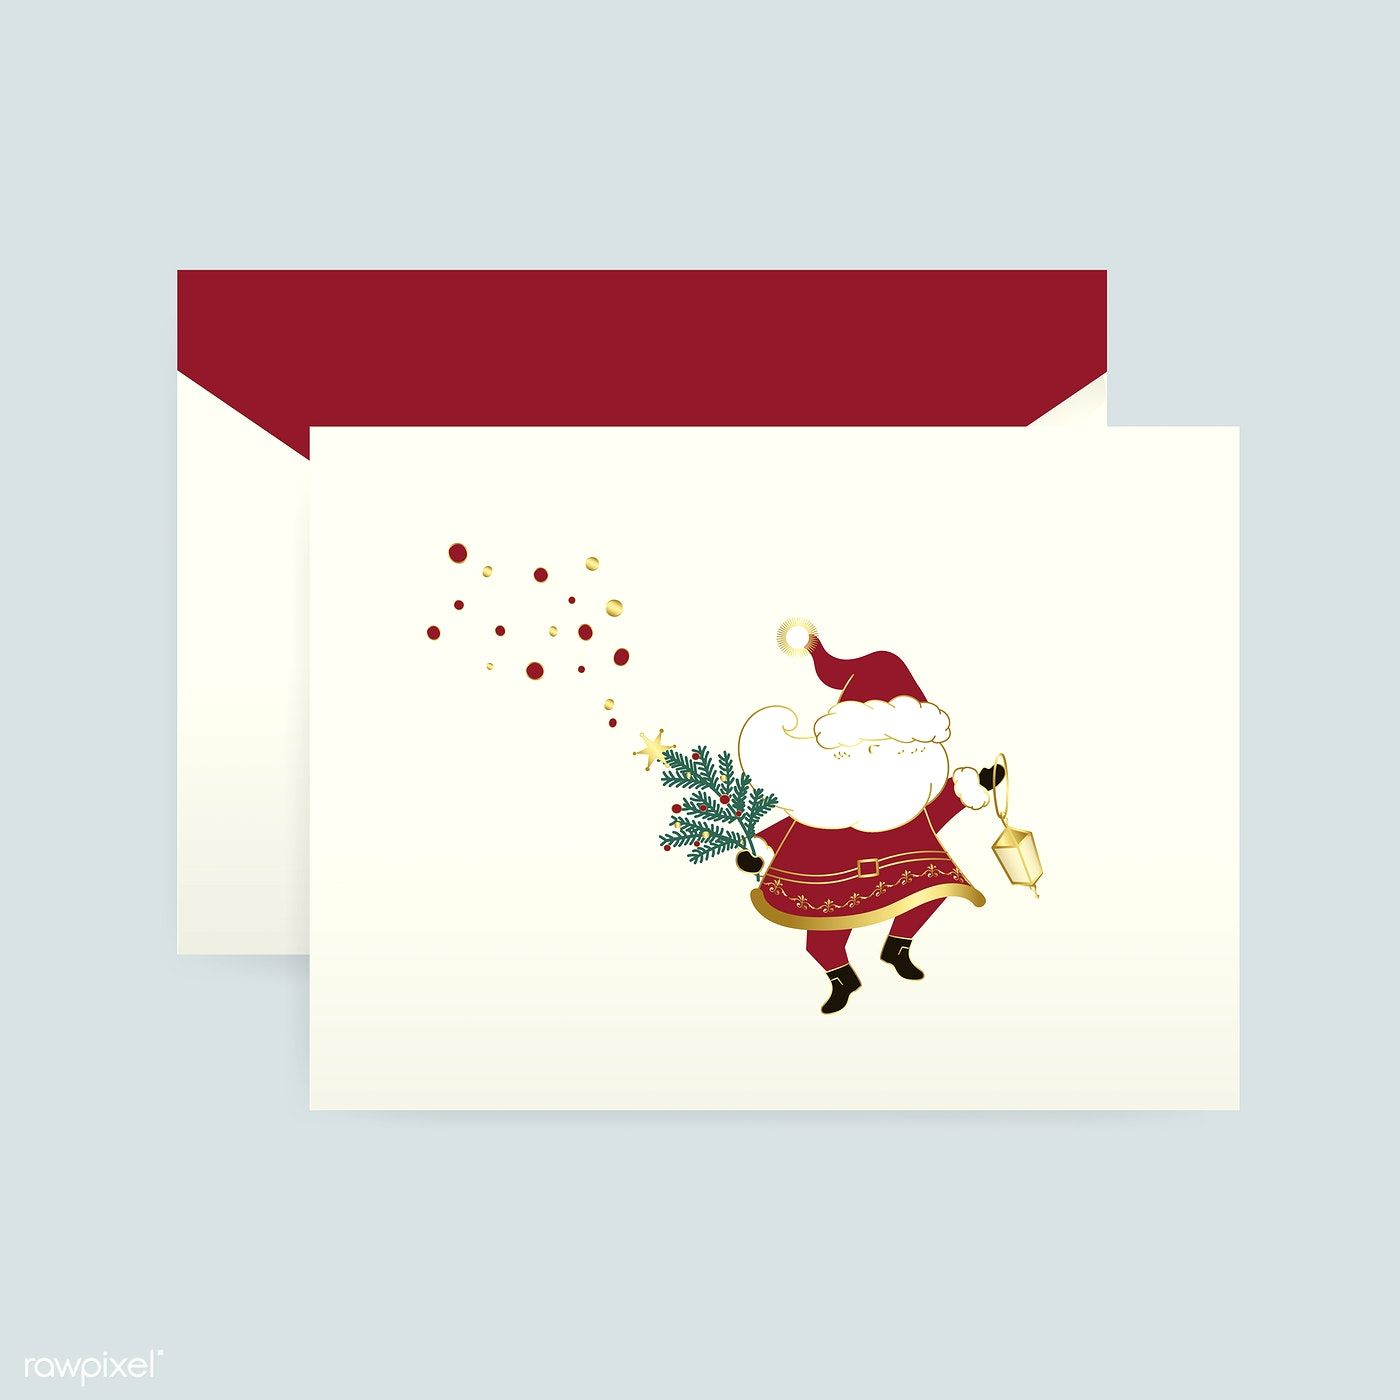 Santa Claus On A Christmas Card Vector Free Image By Rawpixel